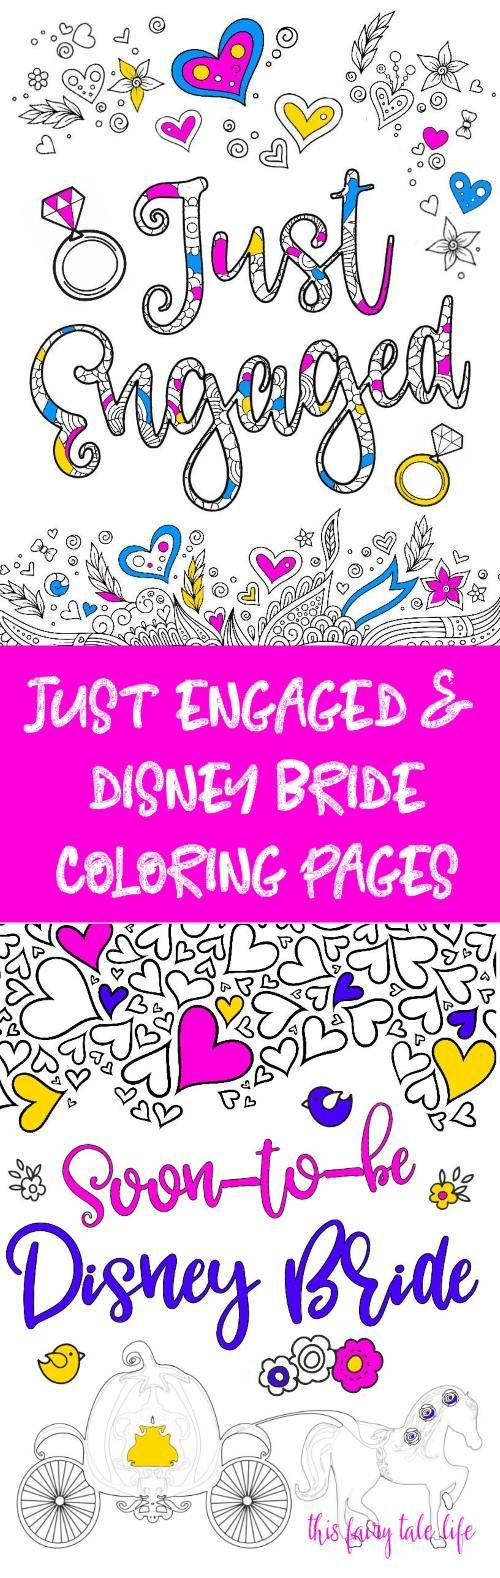 51 best Disney Weddings and Honeymoons images on Pinterest | Disney ...